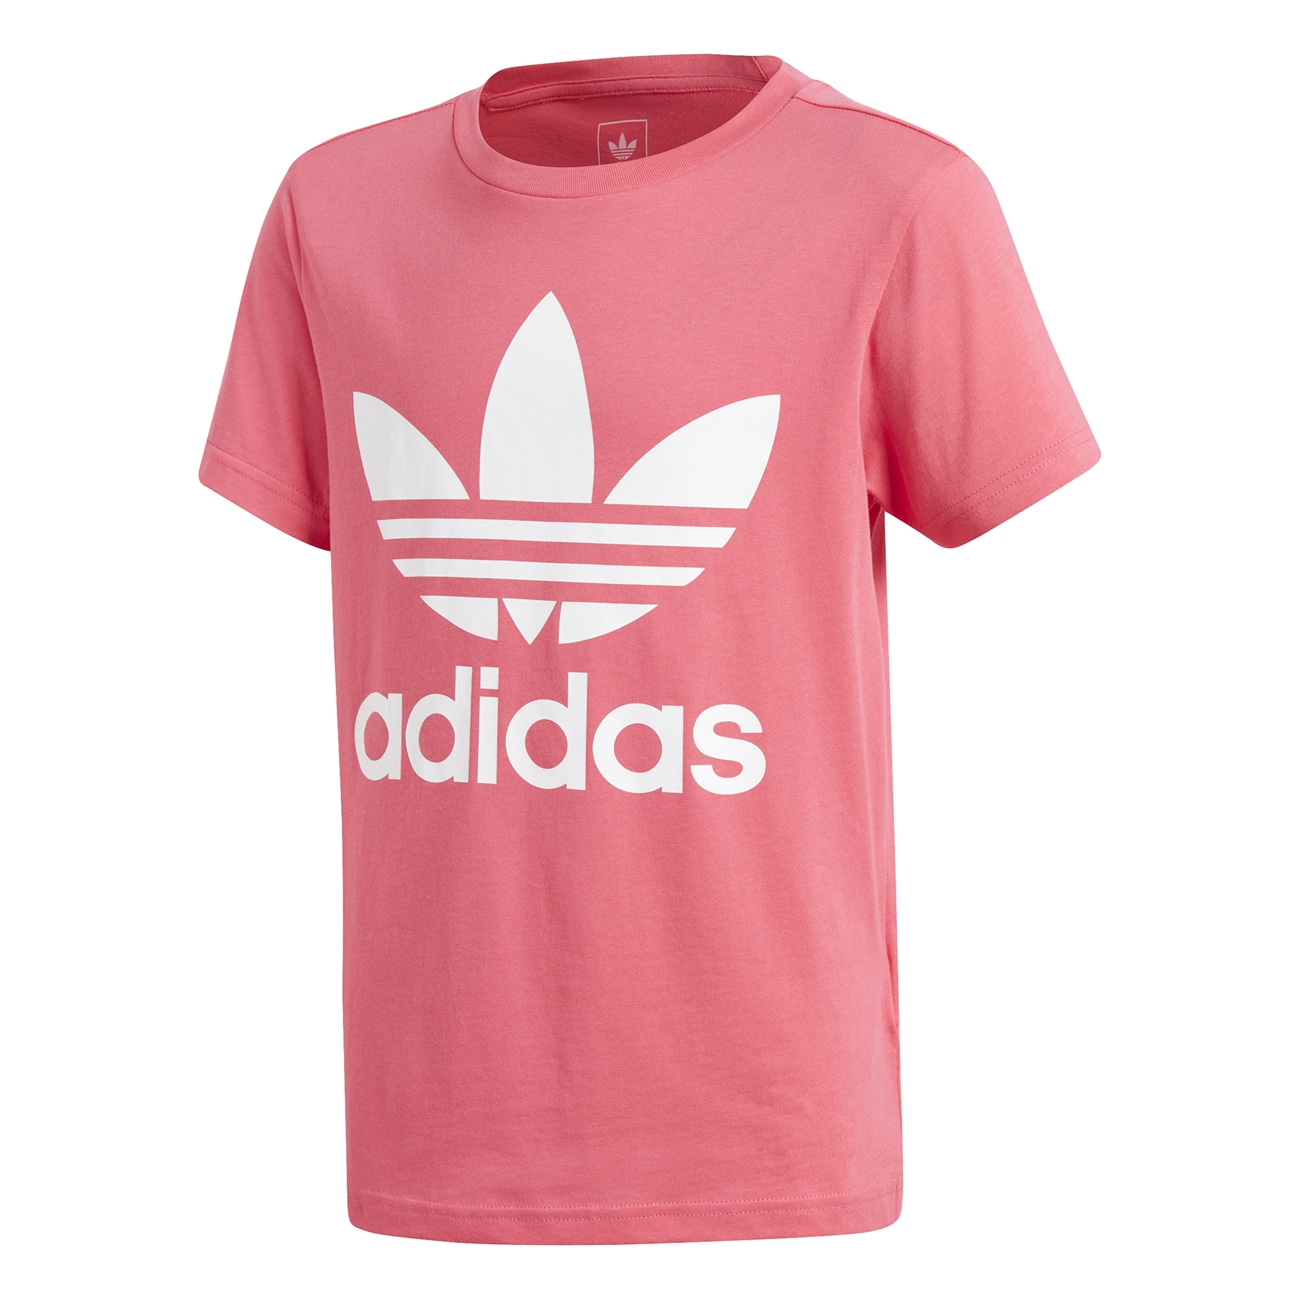 Ofertas Mvp Moda Adidas Crochita Classic Backpack Multicolor Originals Junior Trefoil Tee Real Pink